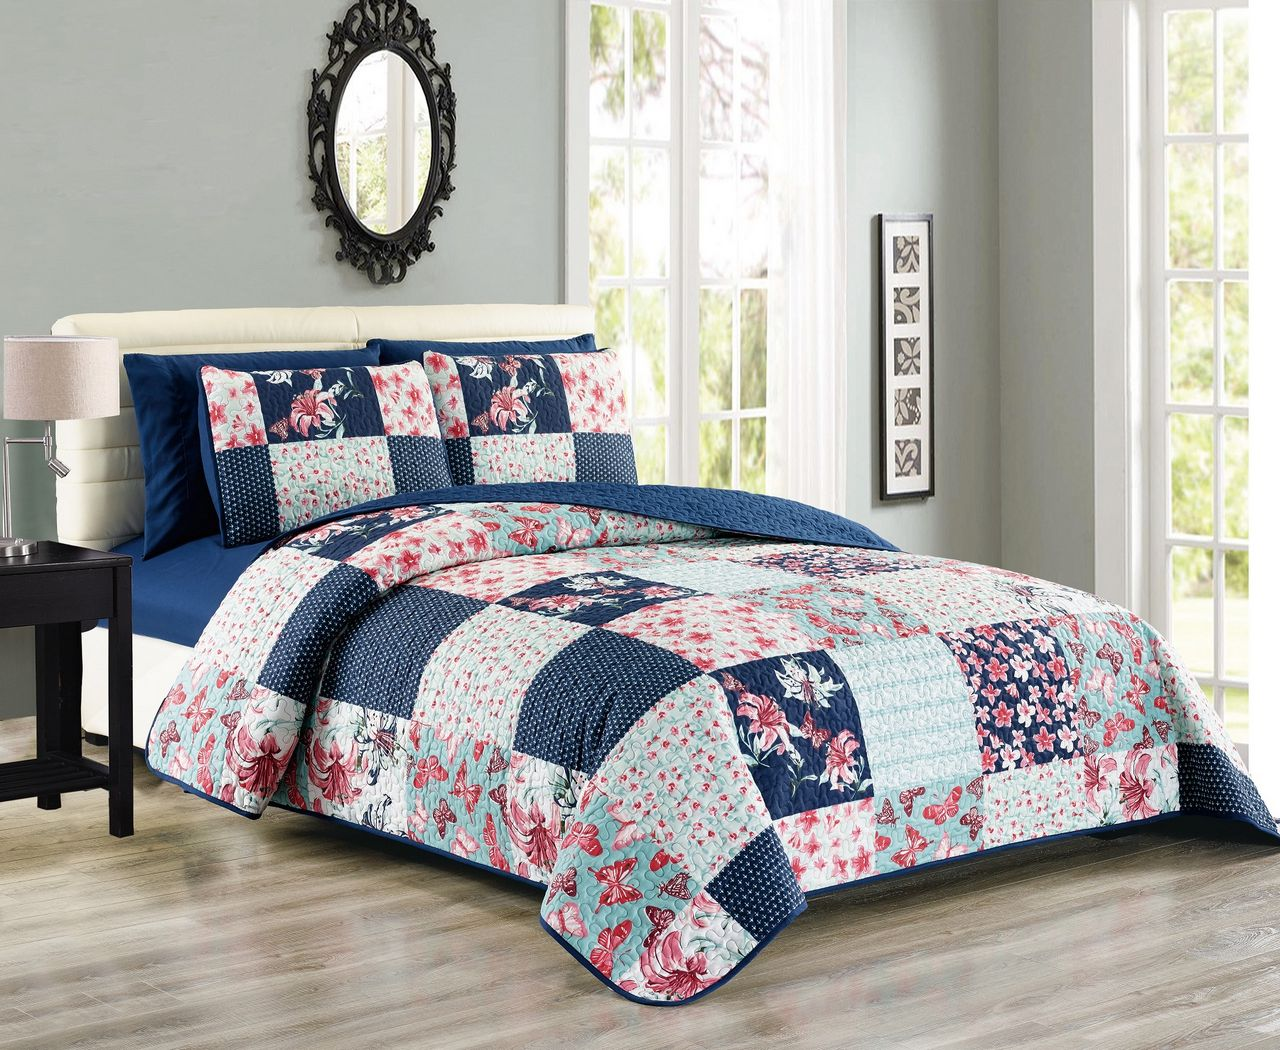 Click here to buy 6 Piece Floral Butterfly Patchwork Reversible Bedspread Quilt with SHeet Set.